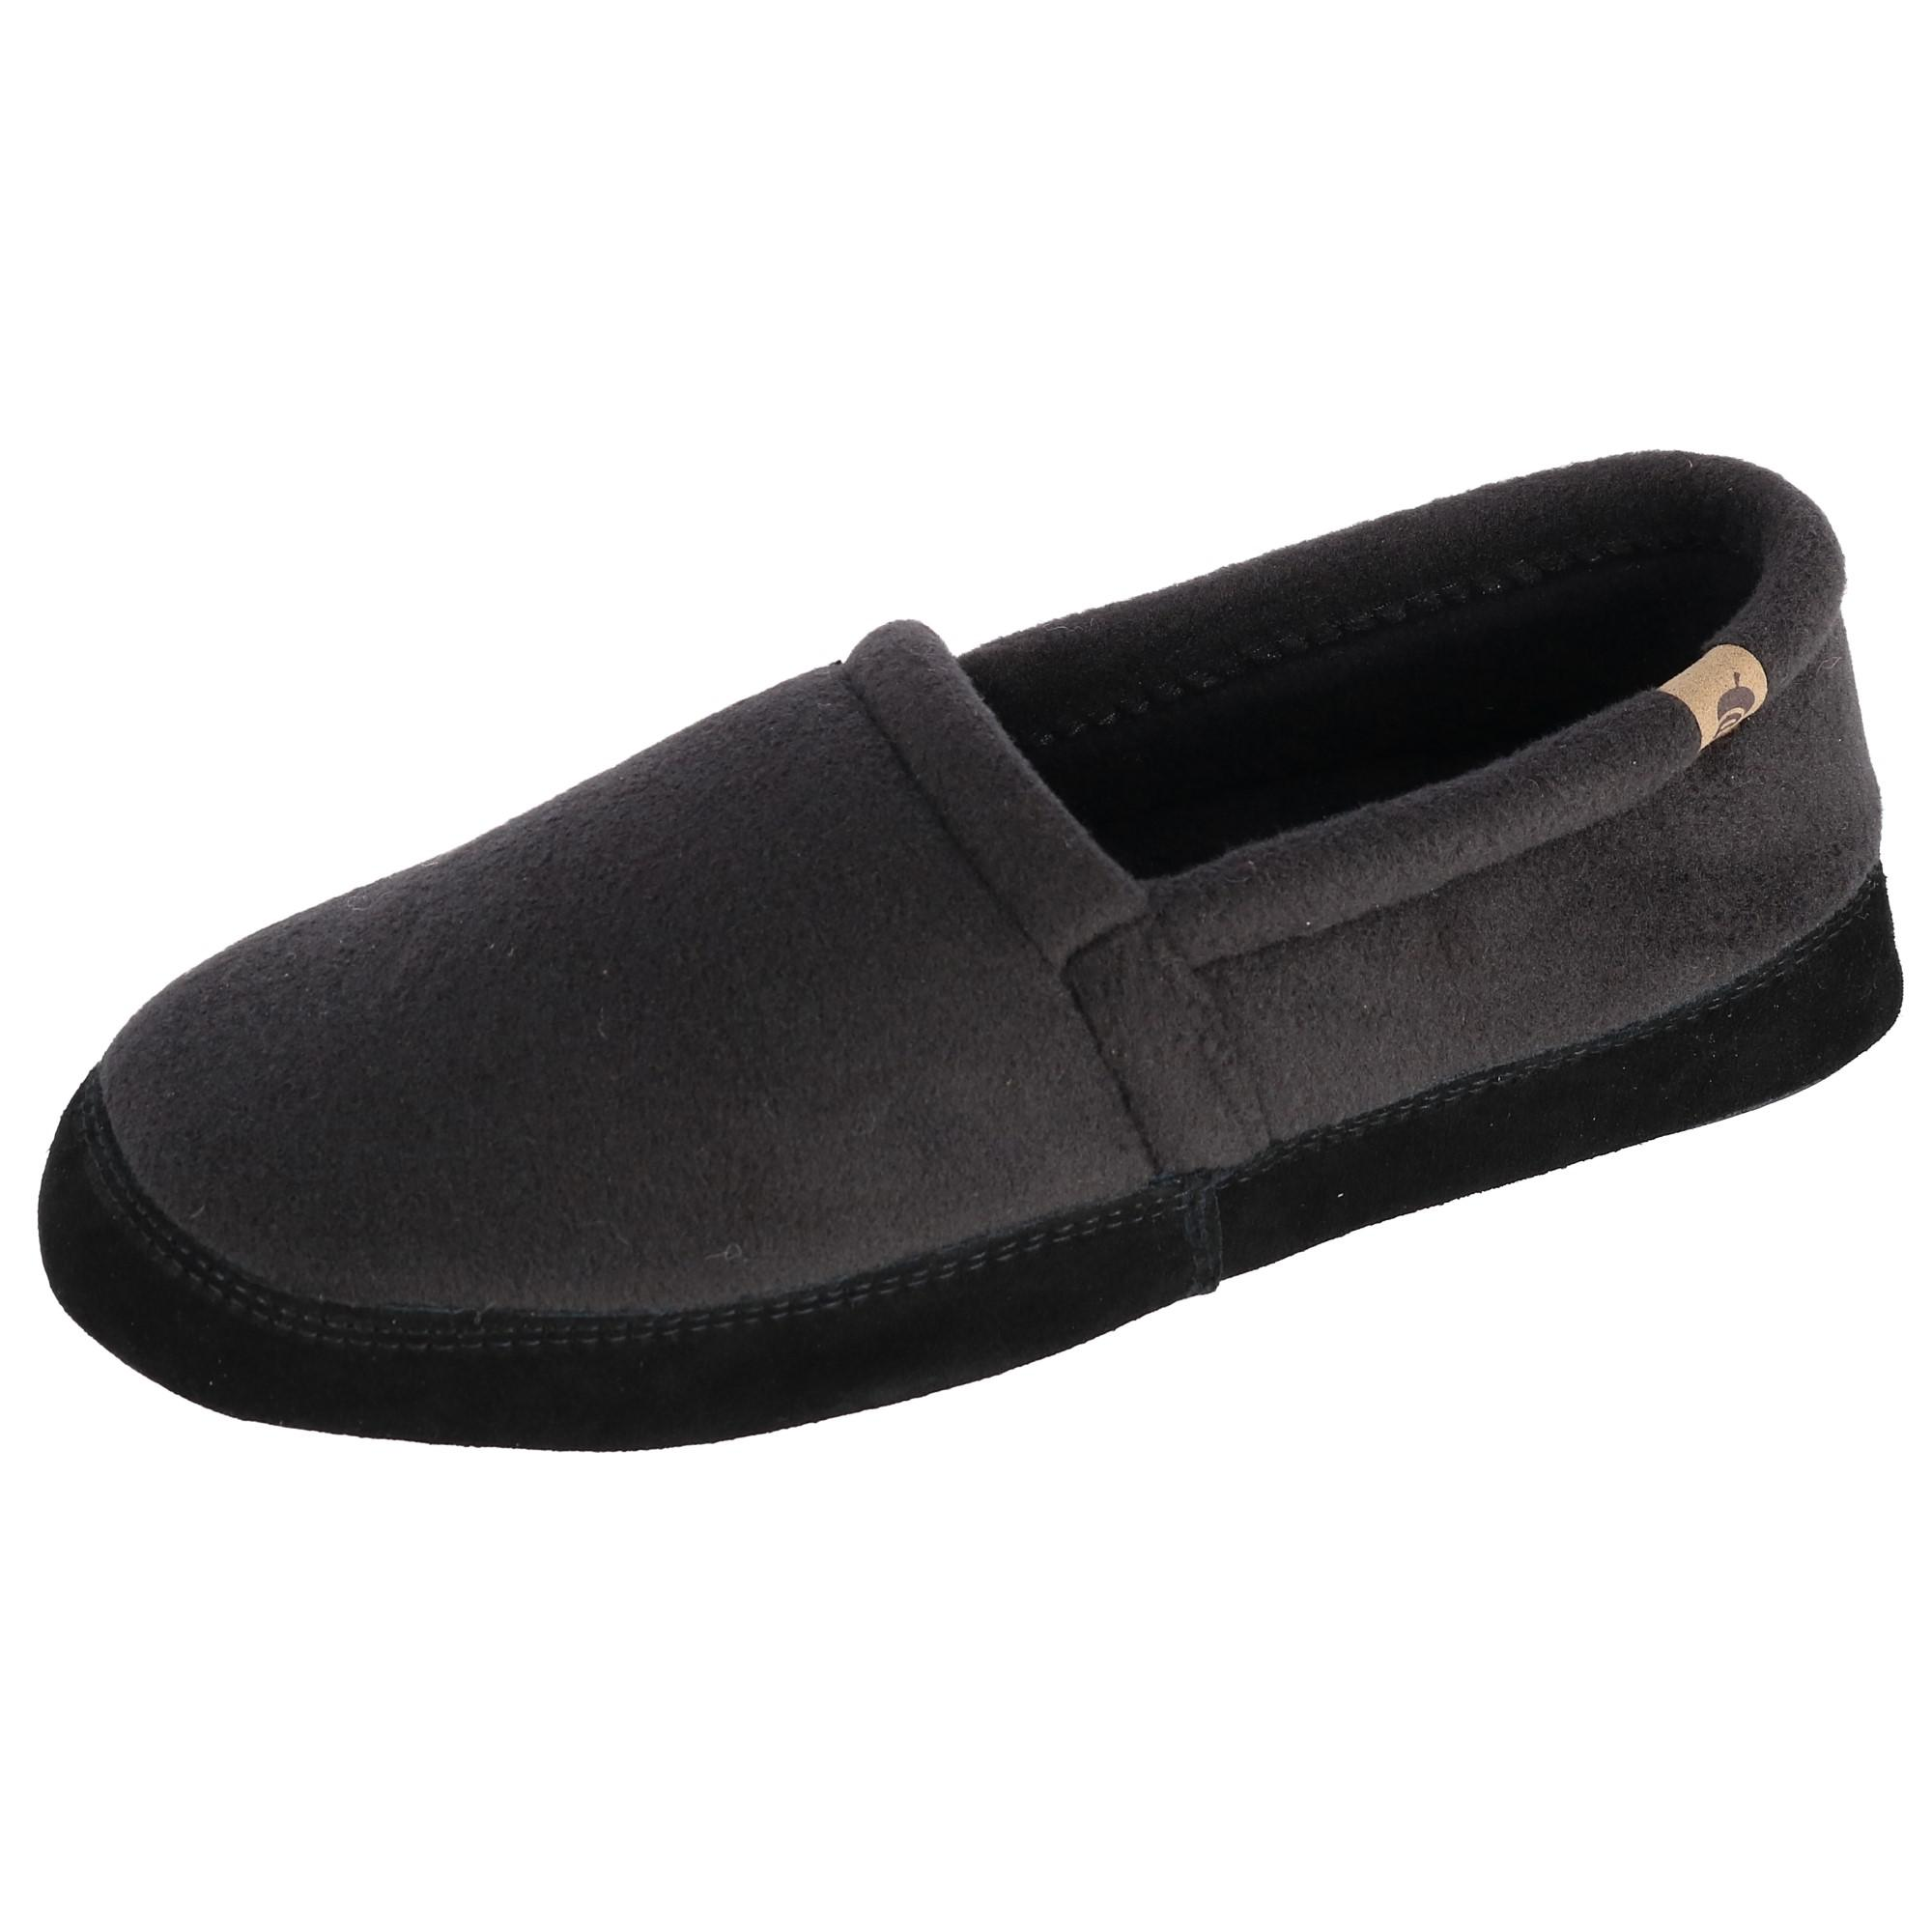 Acorn Mens Moc Indoor/outdoor Lightweight Slipper